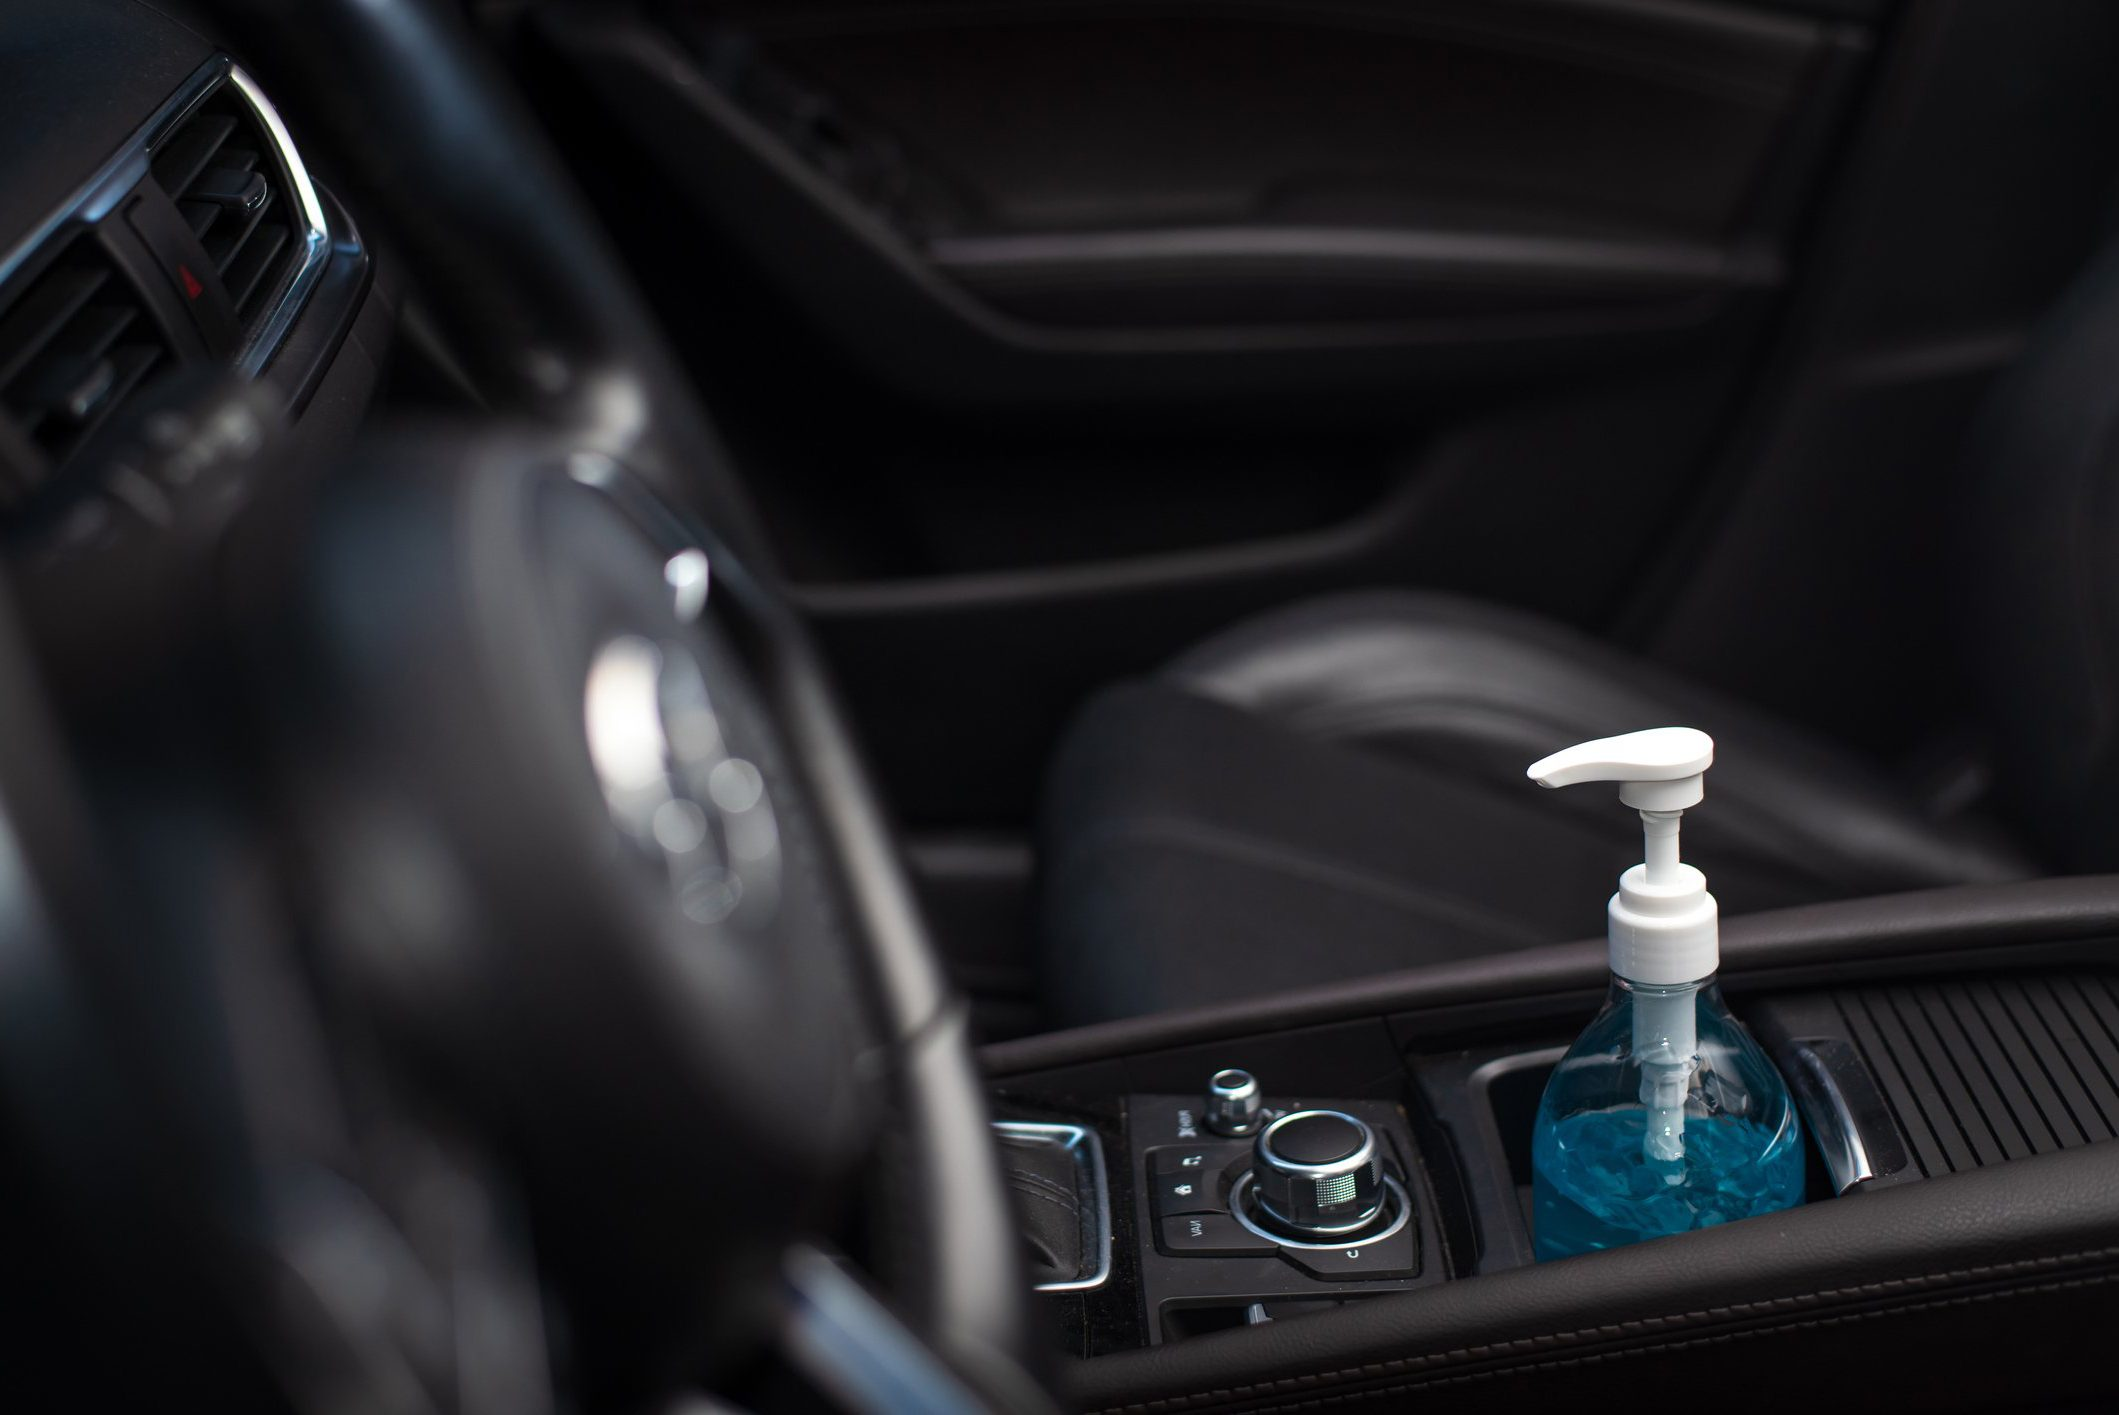 Bottle of blue sanitizer ethyl alcohol hand gel cleanser put in the car, prepare for protecting coronavirus, COVID-19